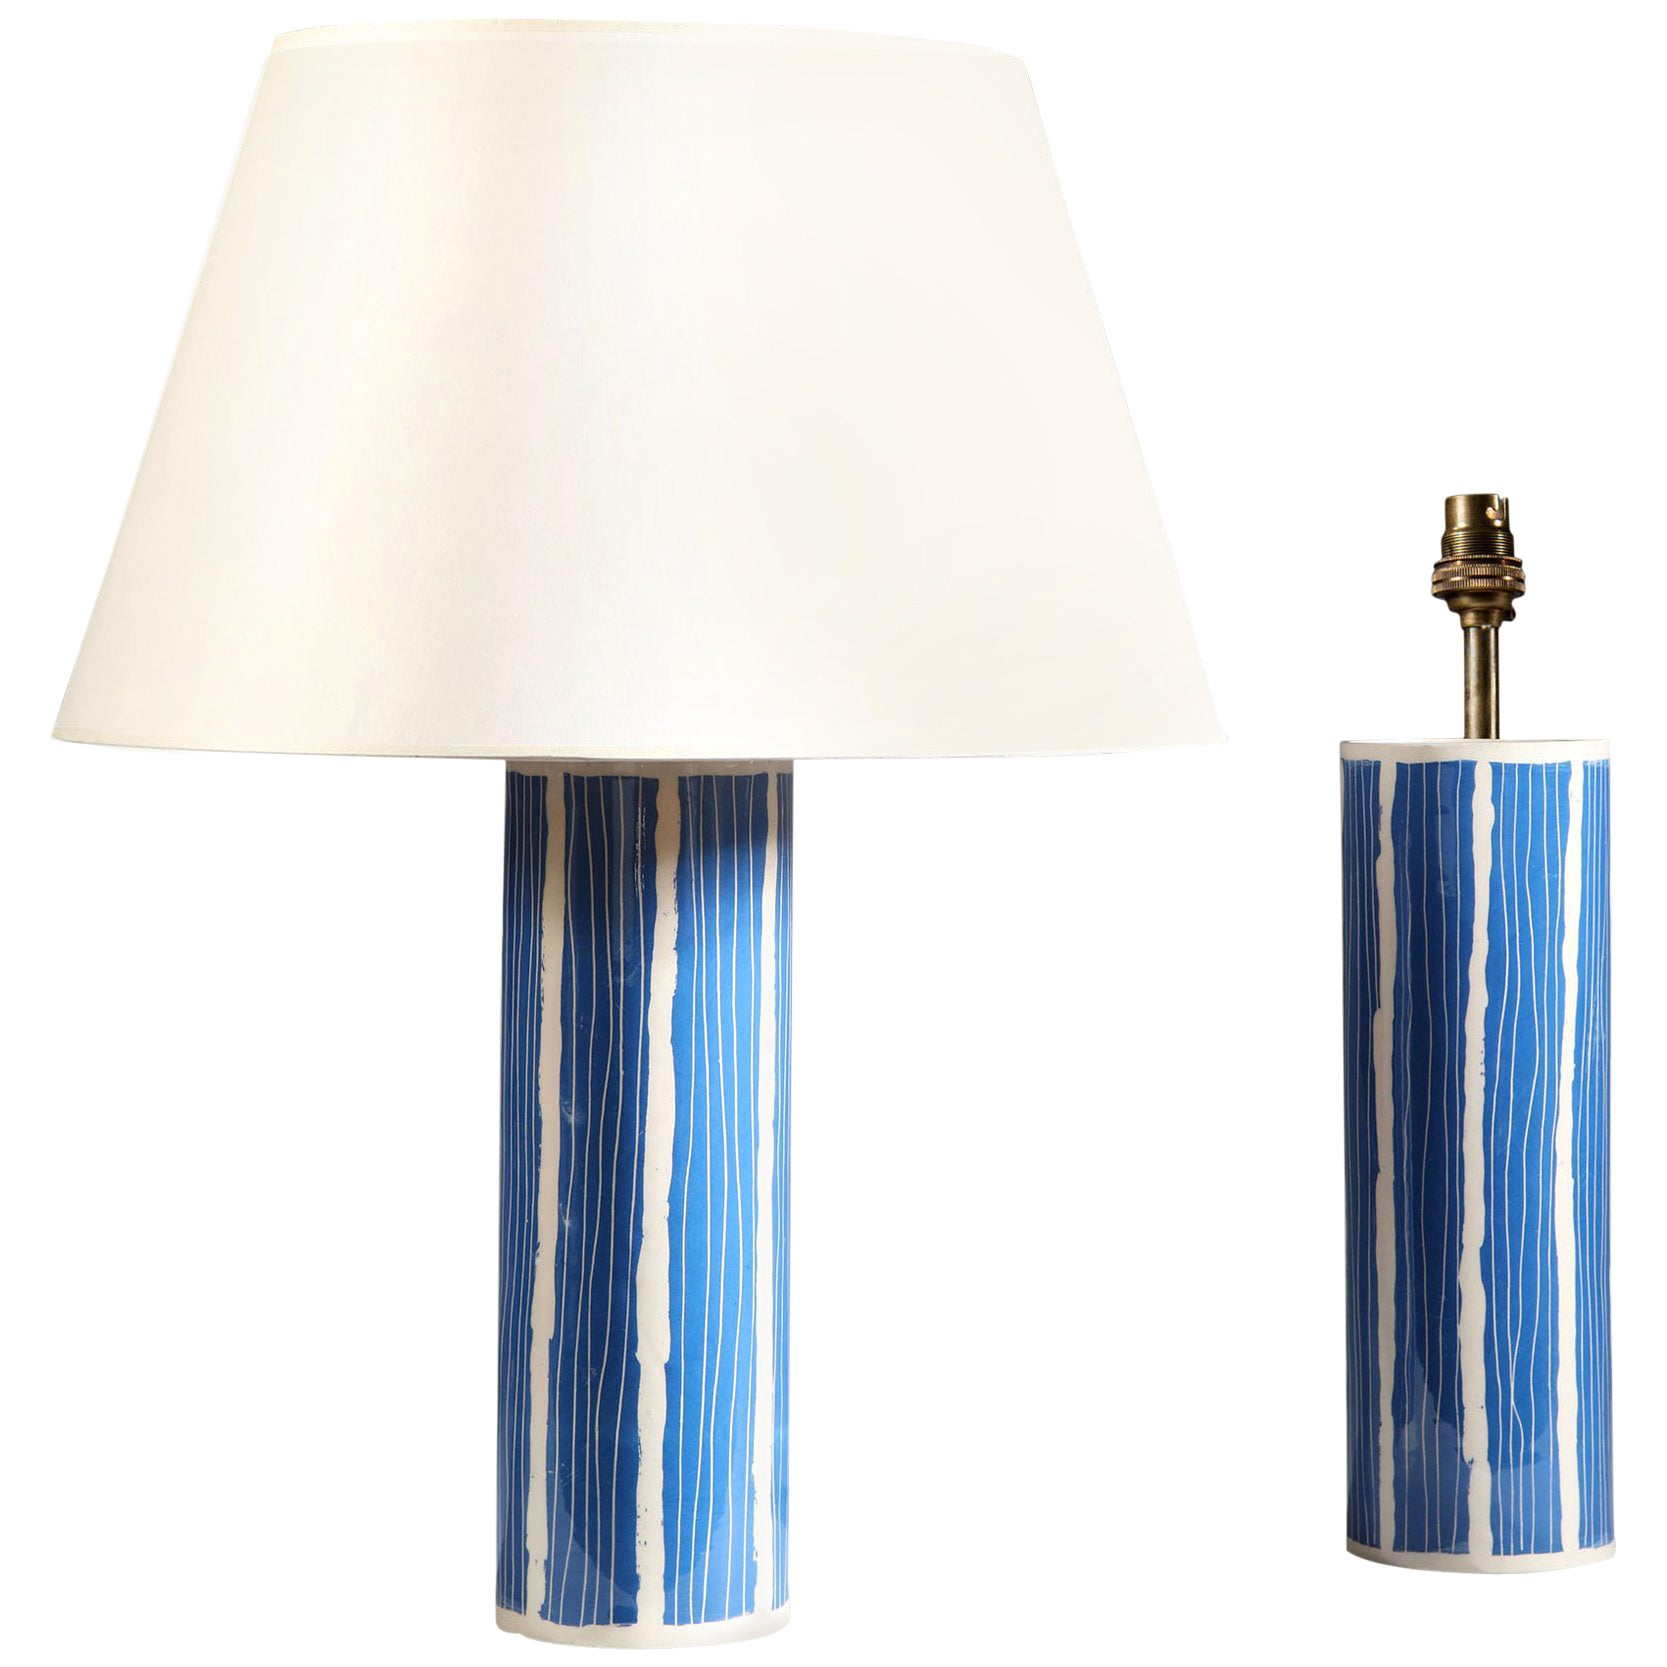 Pair of Blue and White Studio Pottery Vases